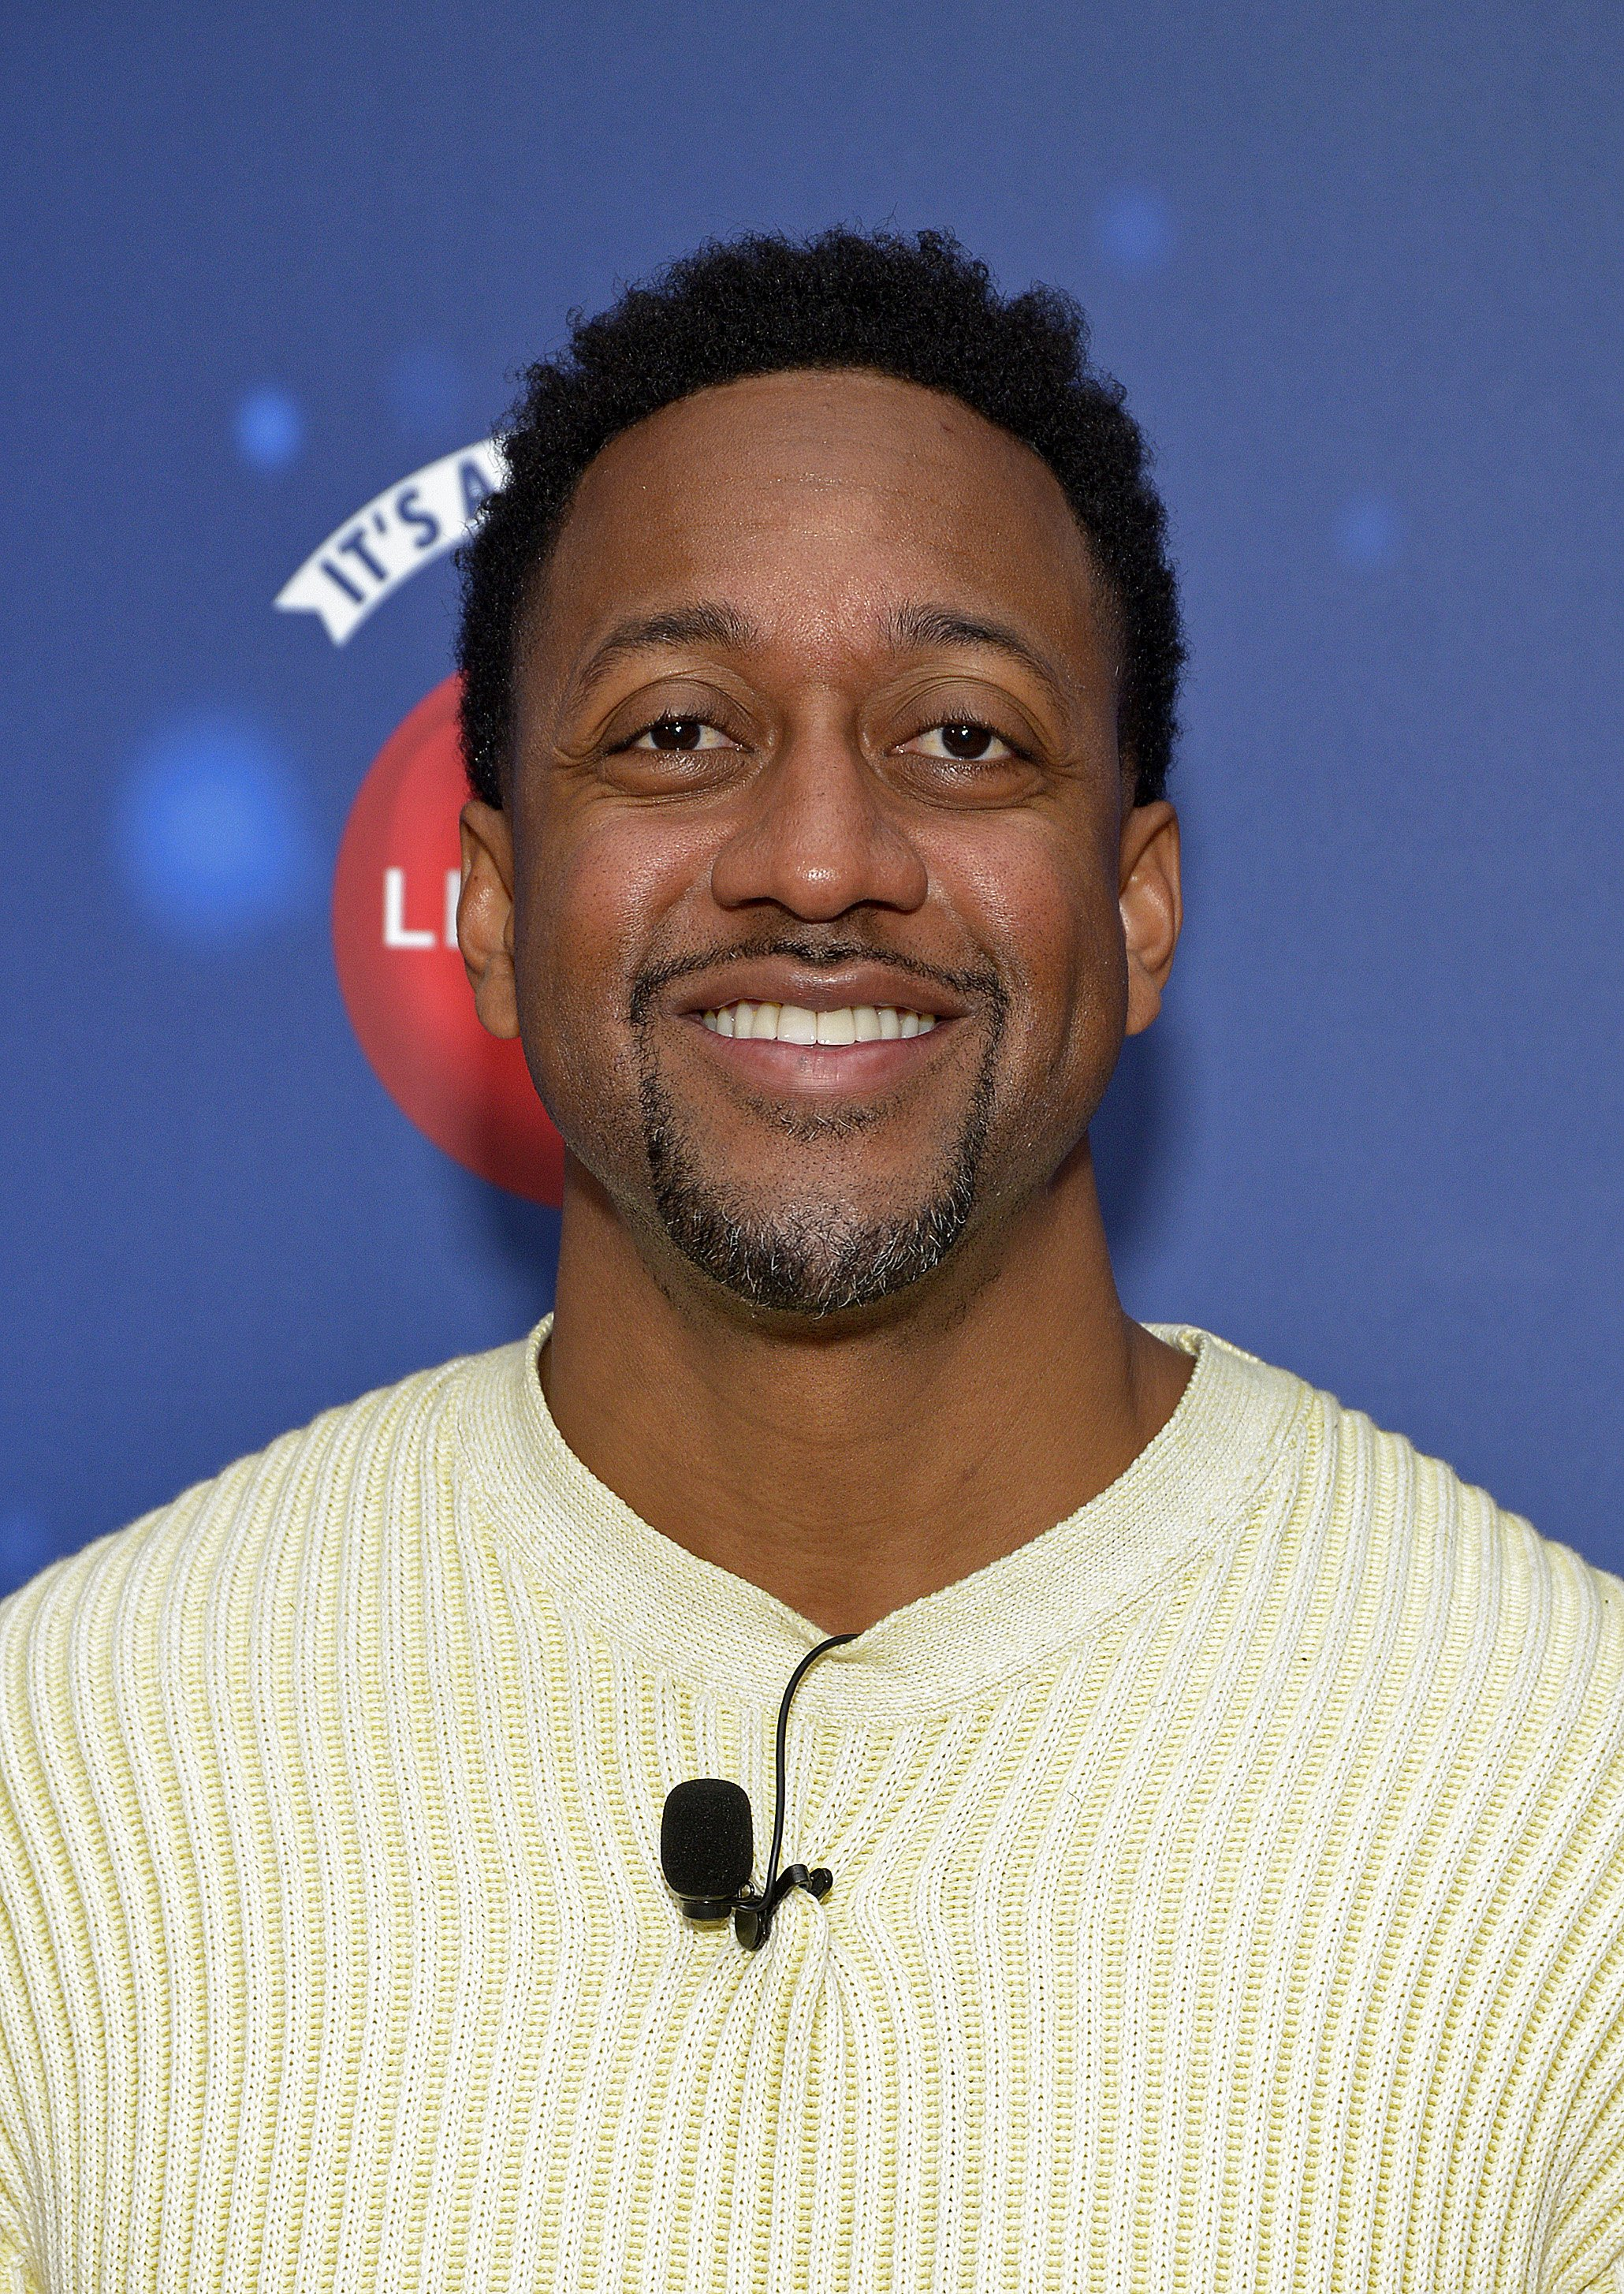 """Actor Jaleel White attends Say """"Santa!"""" with It's A Wonderful Lifetime photo experience at Glendale Galleria on November 09, 2019  